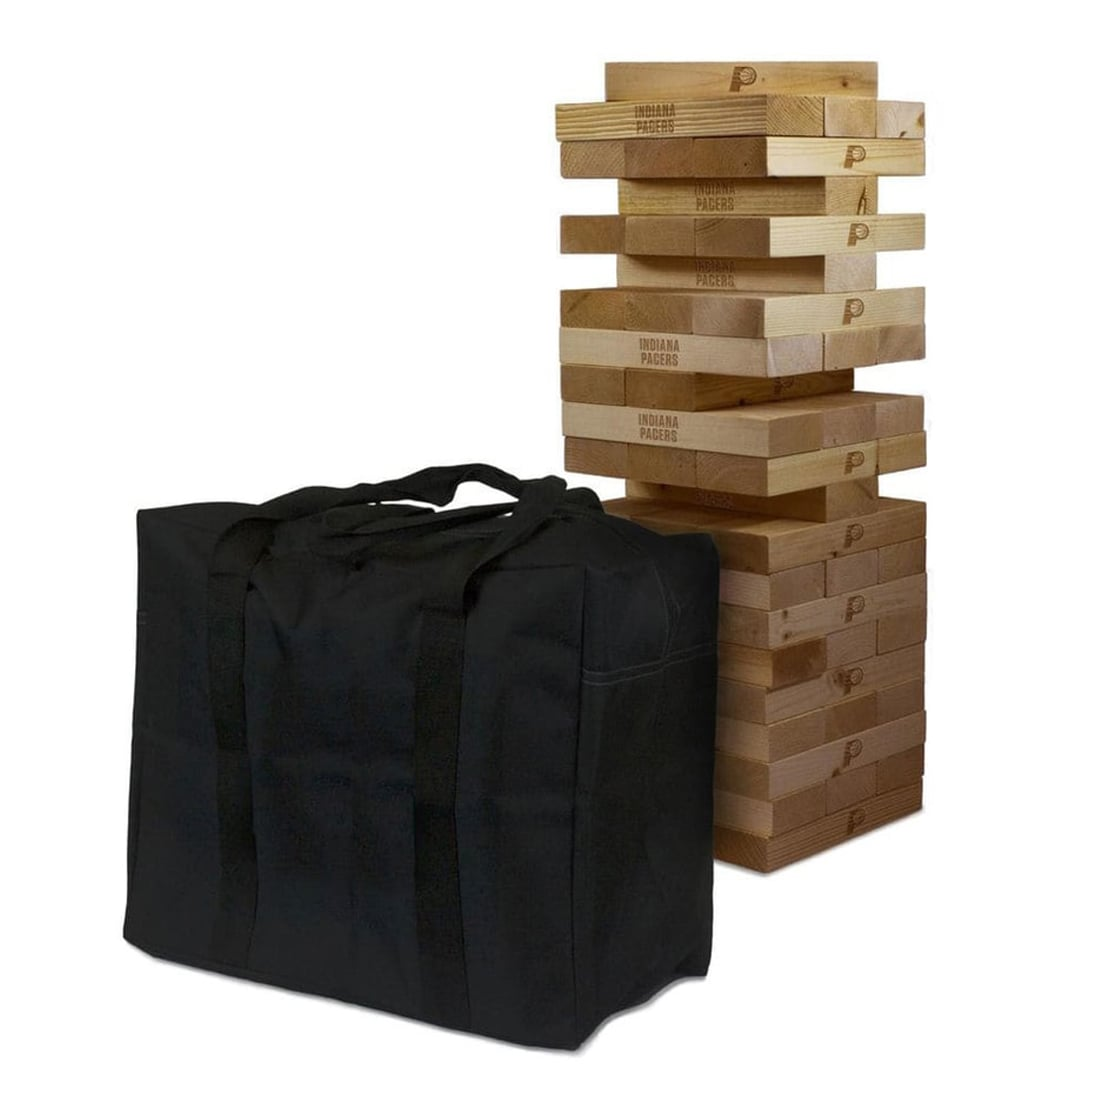 Indiana Pacers Giant Wooden Tumble Tower Game